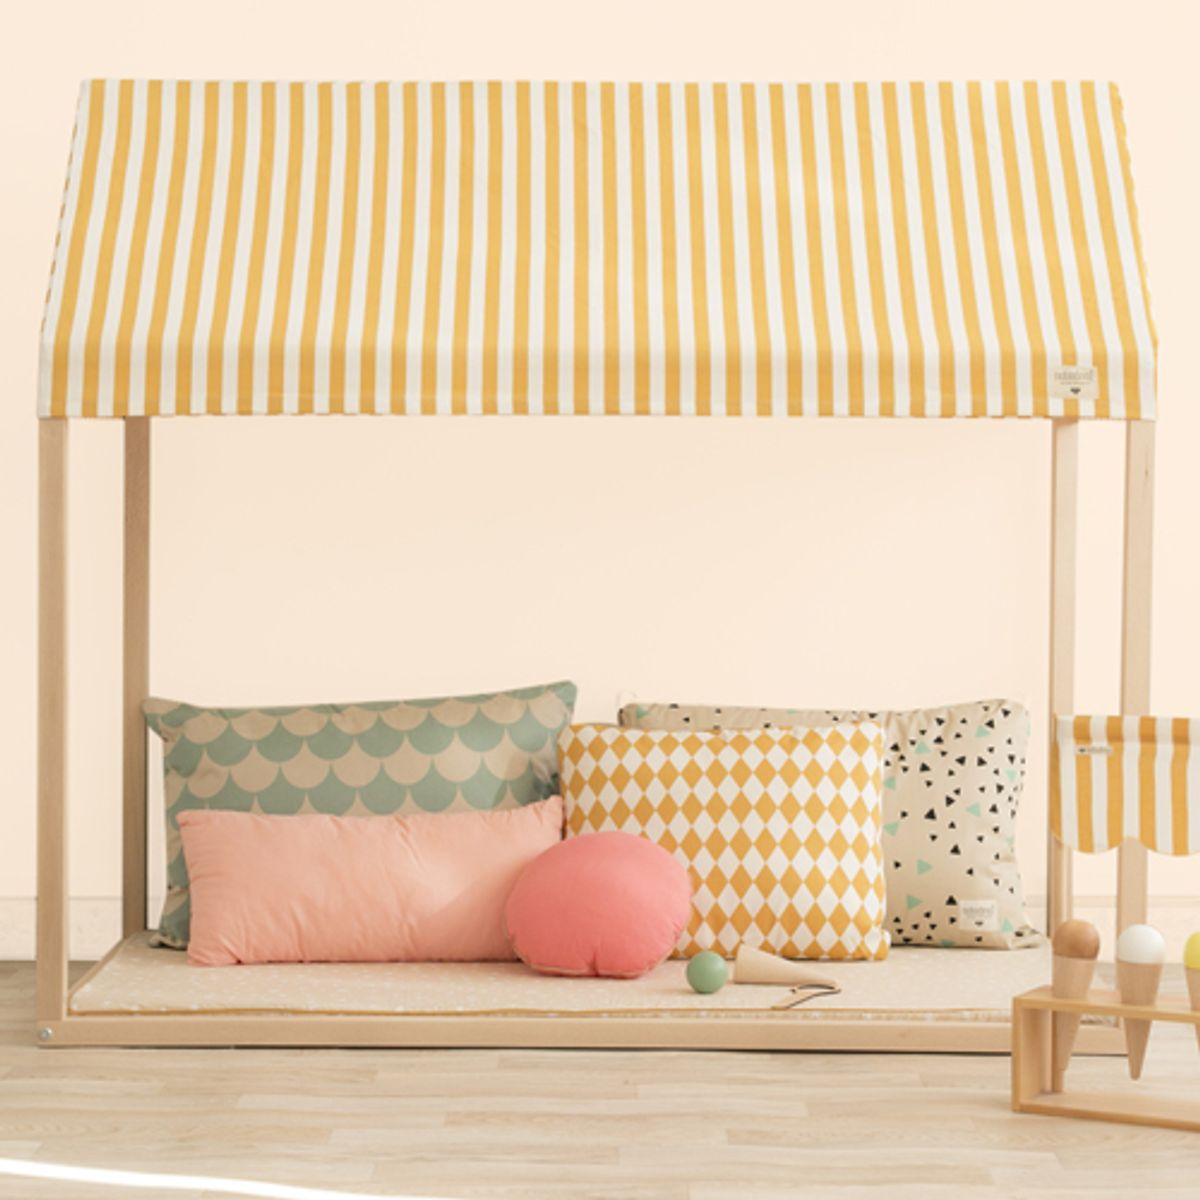 Cabane en bois et coton Ibiza home Honey stripes Nobodinoz